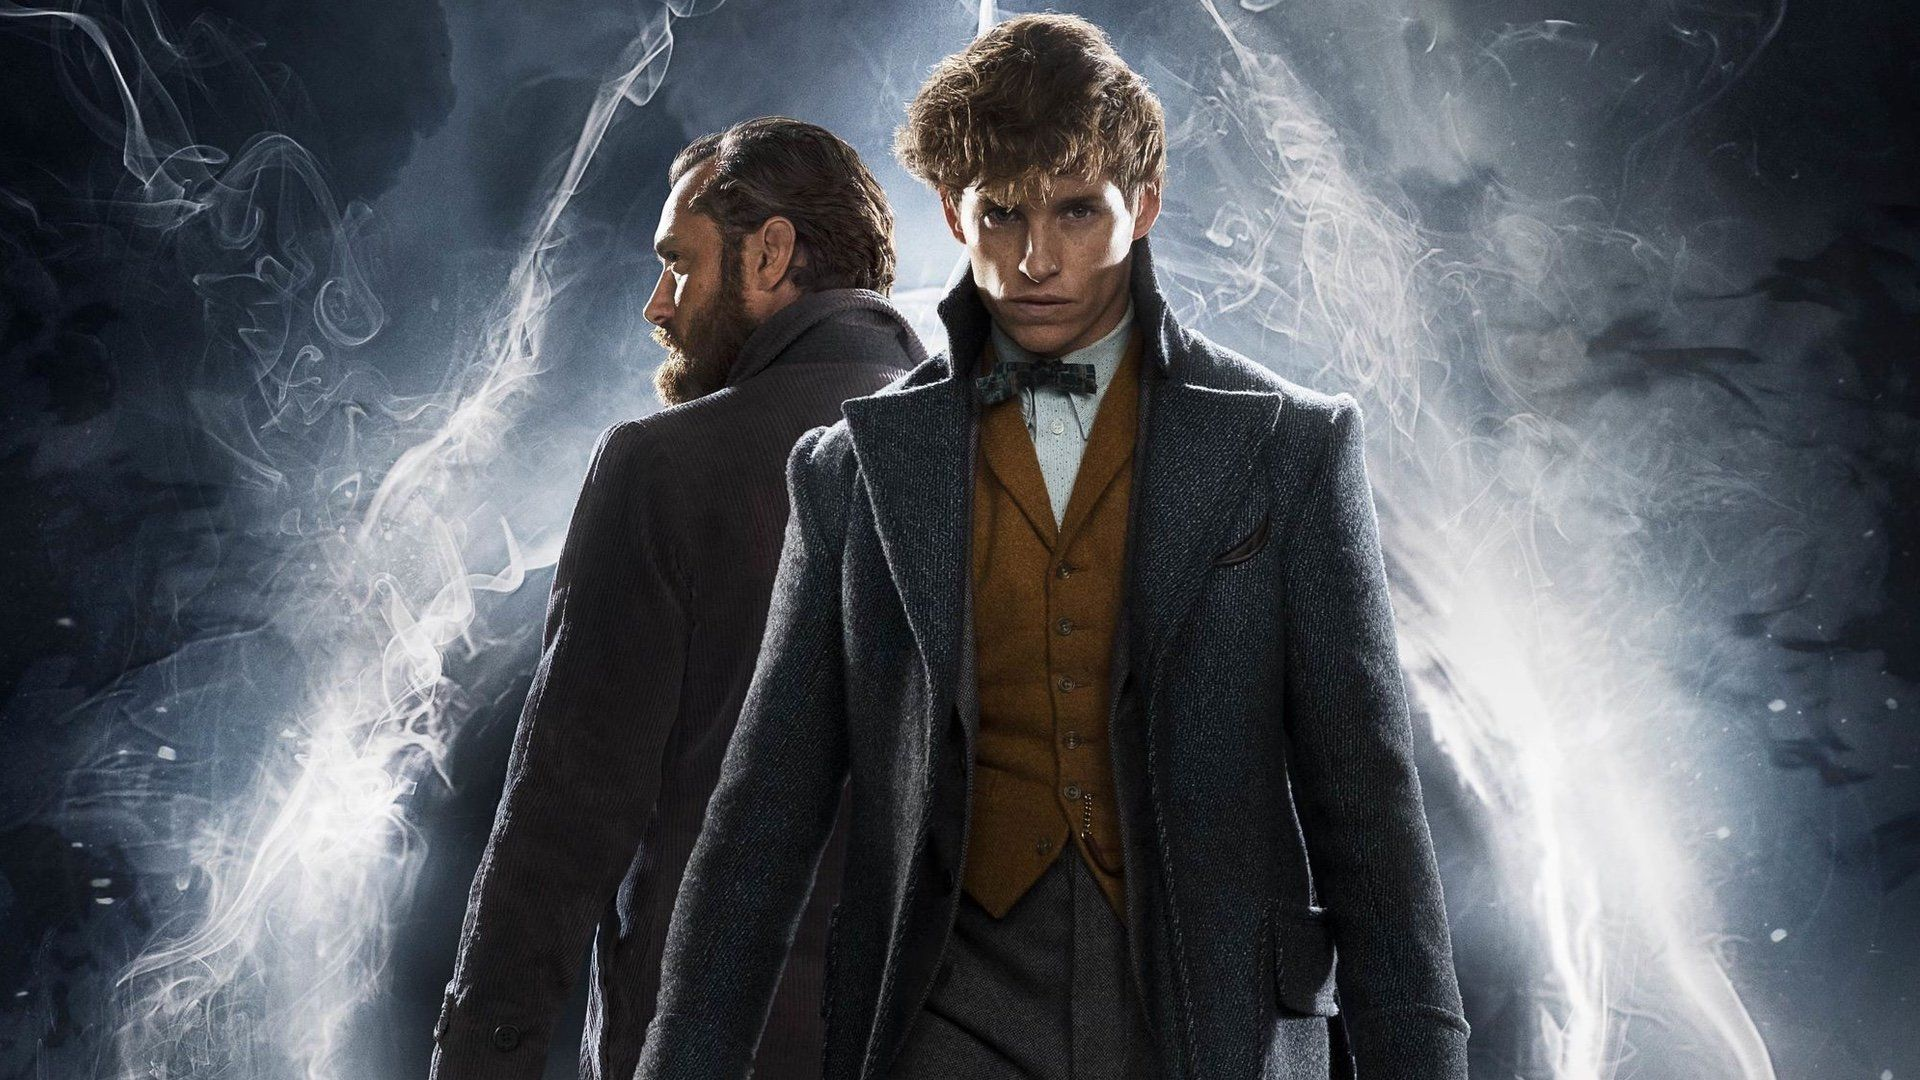 FANTASTIC BEASTS: The Crimes Of Grindelwald' Is A Visual Feast But Falls Short Of The Bar Set By The Original - HuffPost